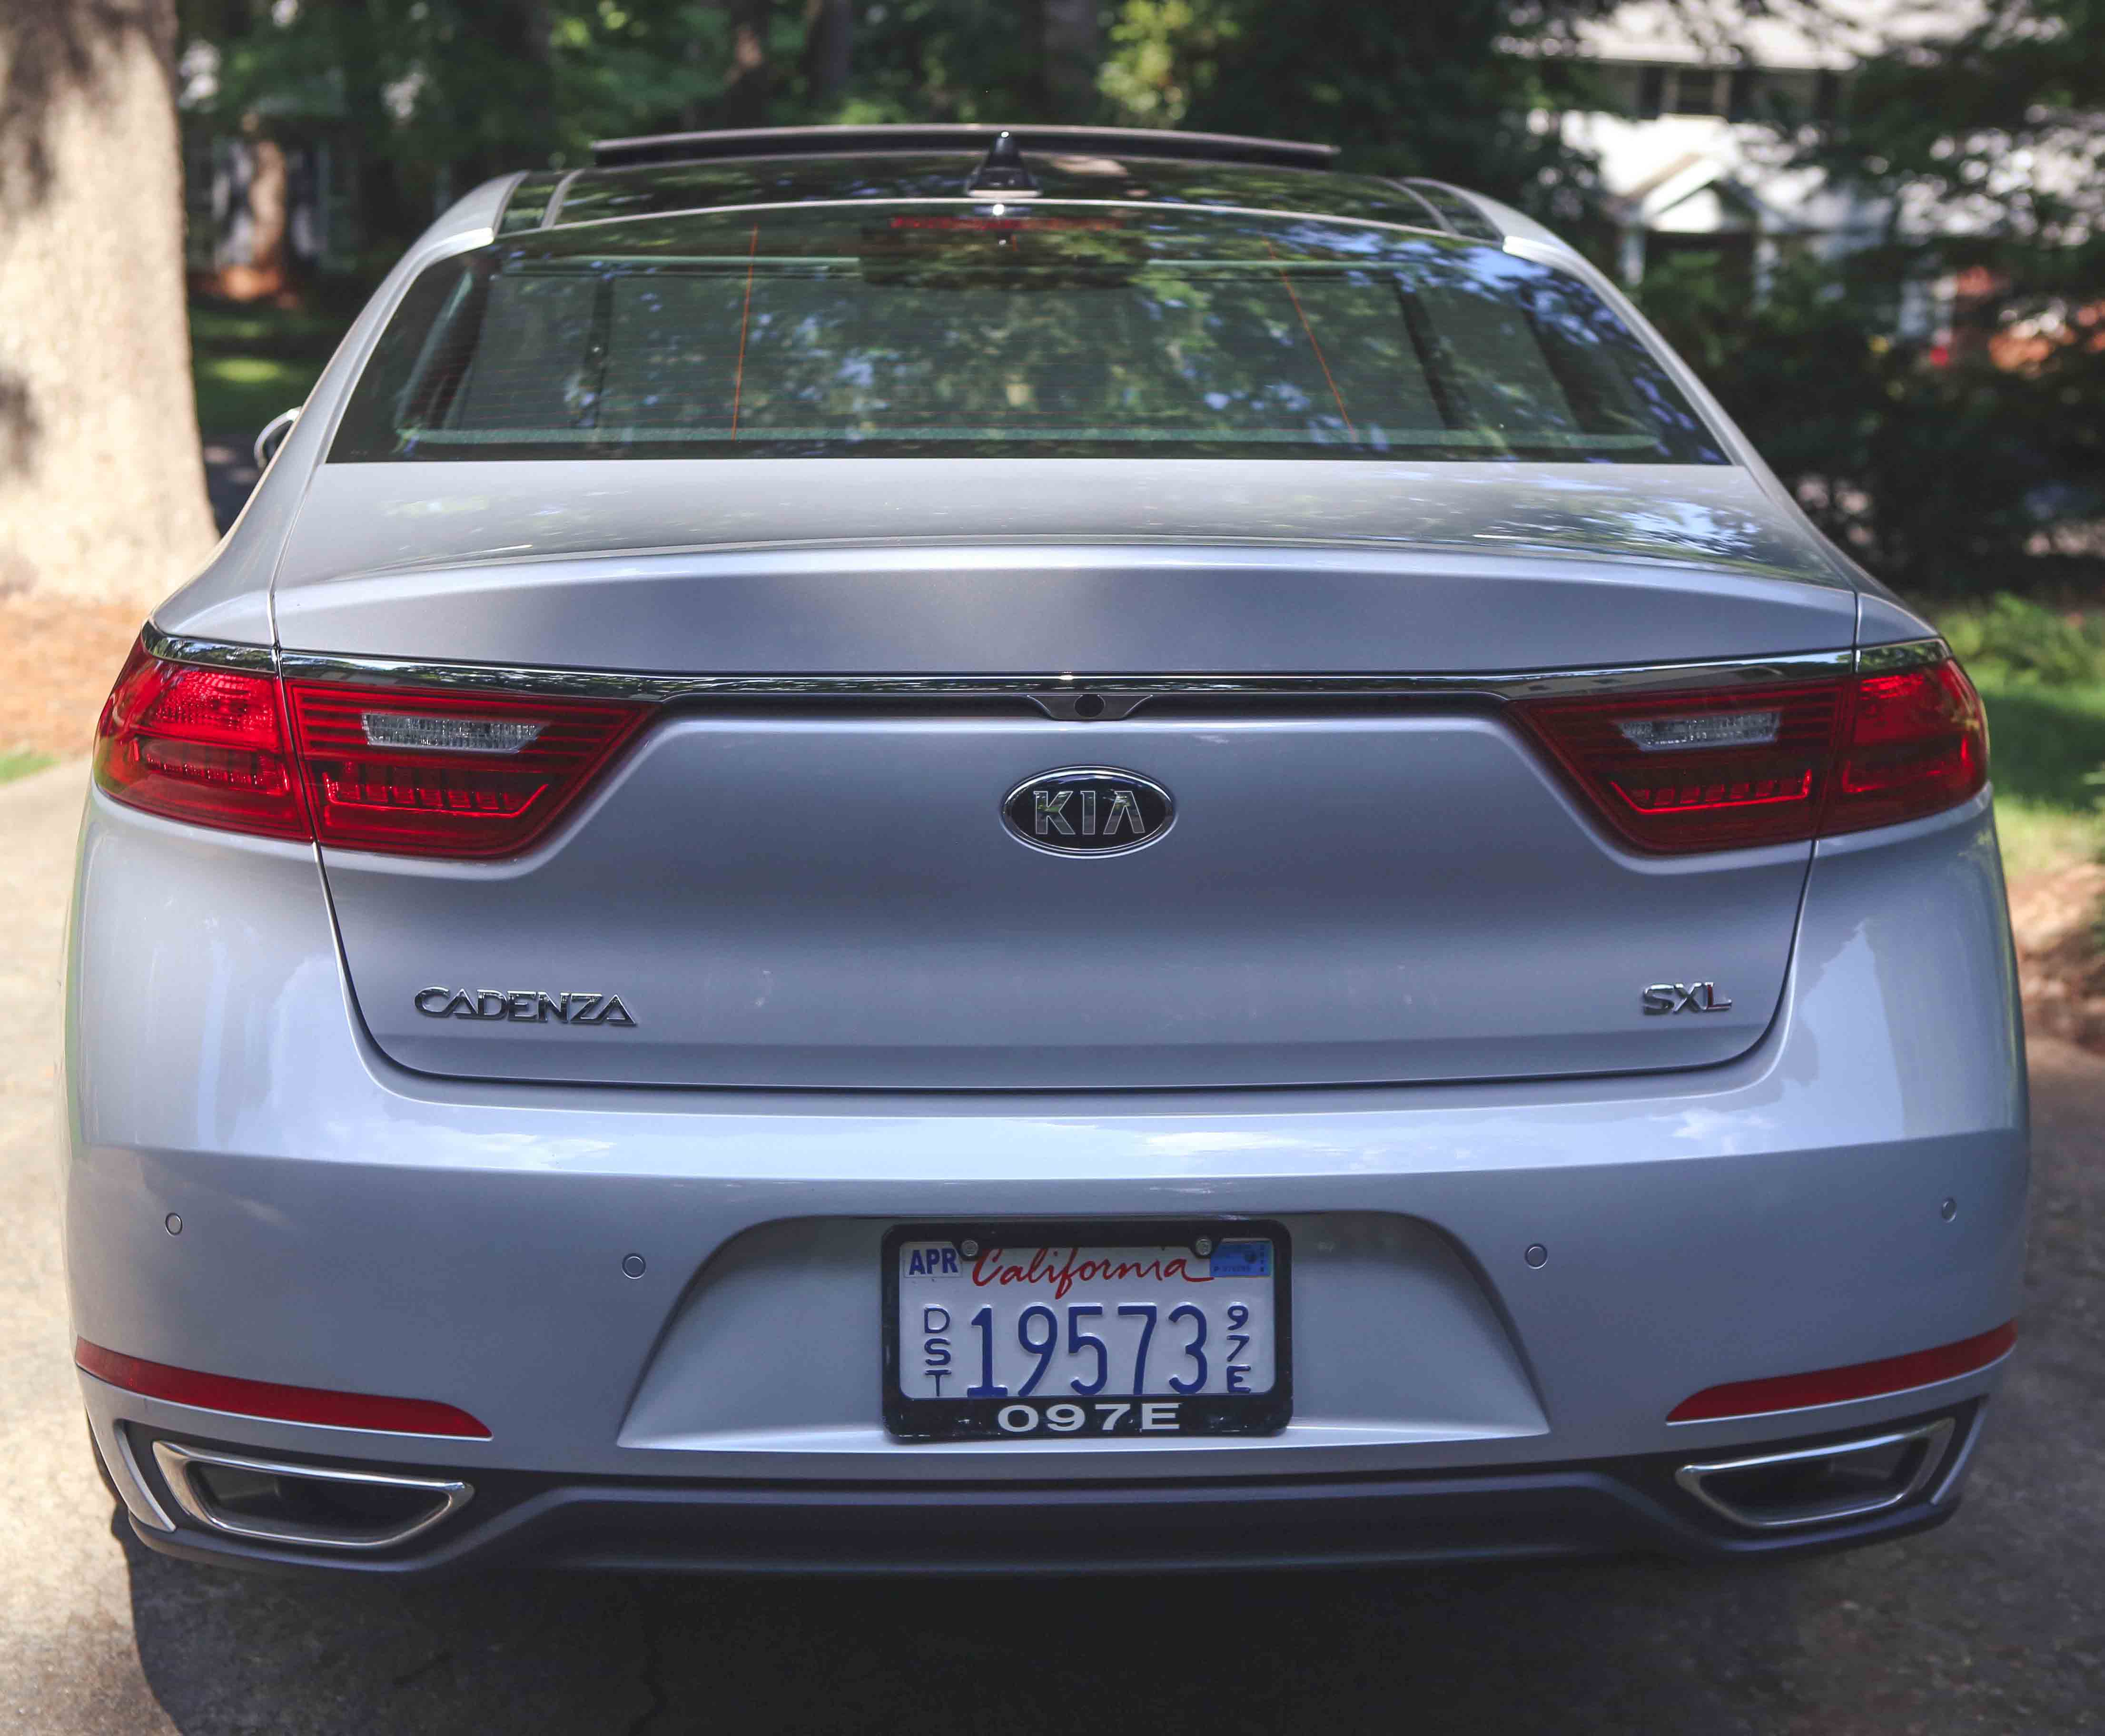 My Kia Cadenza Review by popular blogger Jessica of Happily Hughes